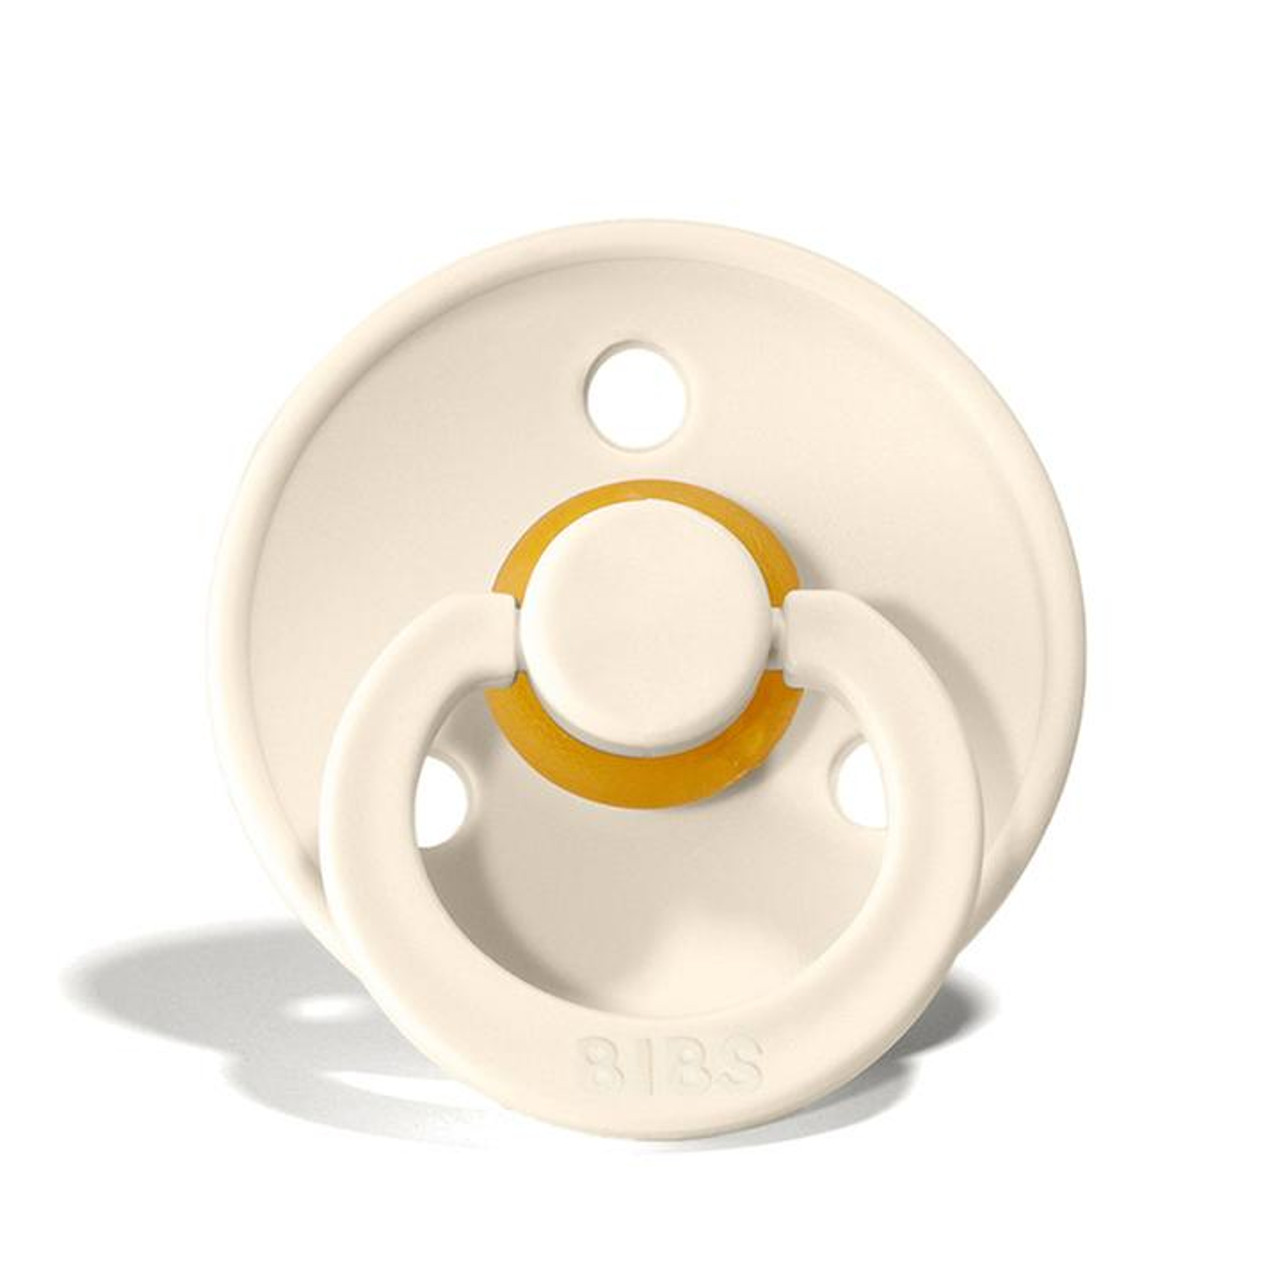 BIBS Colour Collection Pacifier- Size One at Baby Barn Discounts The Colour collection by BIBS is the perfect shape for babies mouth and features a comfortable shield and a beautiful array of colours. This lightweight pacifier is a wonderful baby accessory.